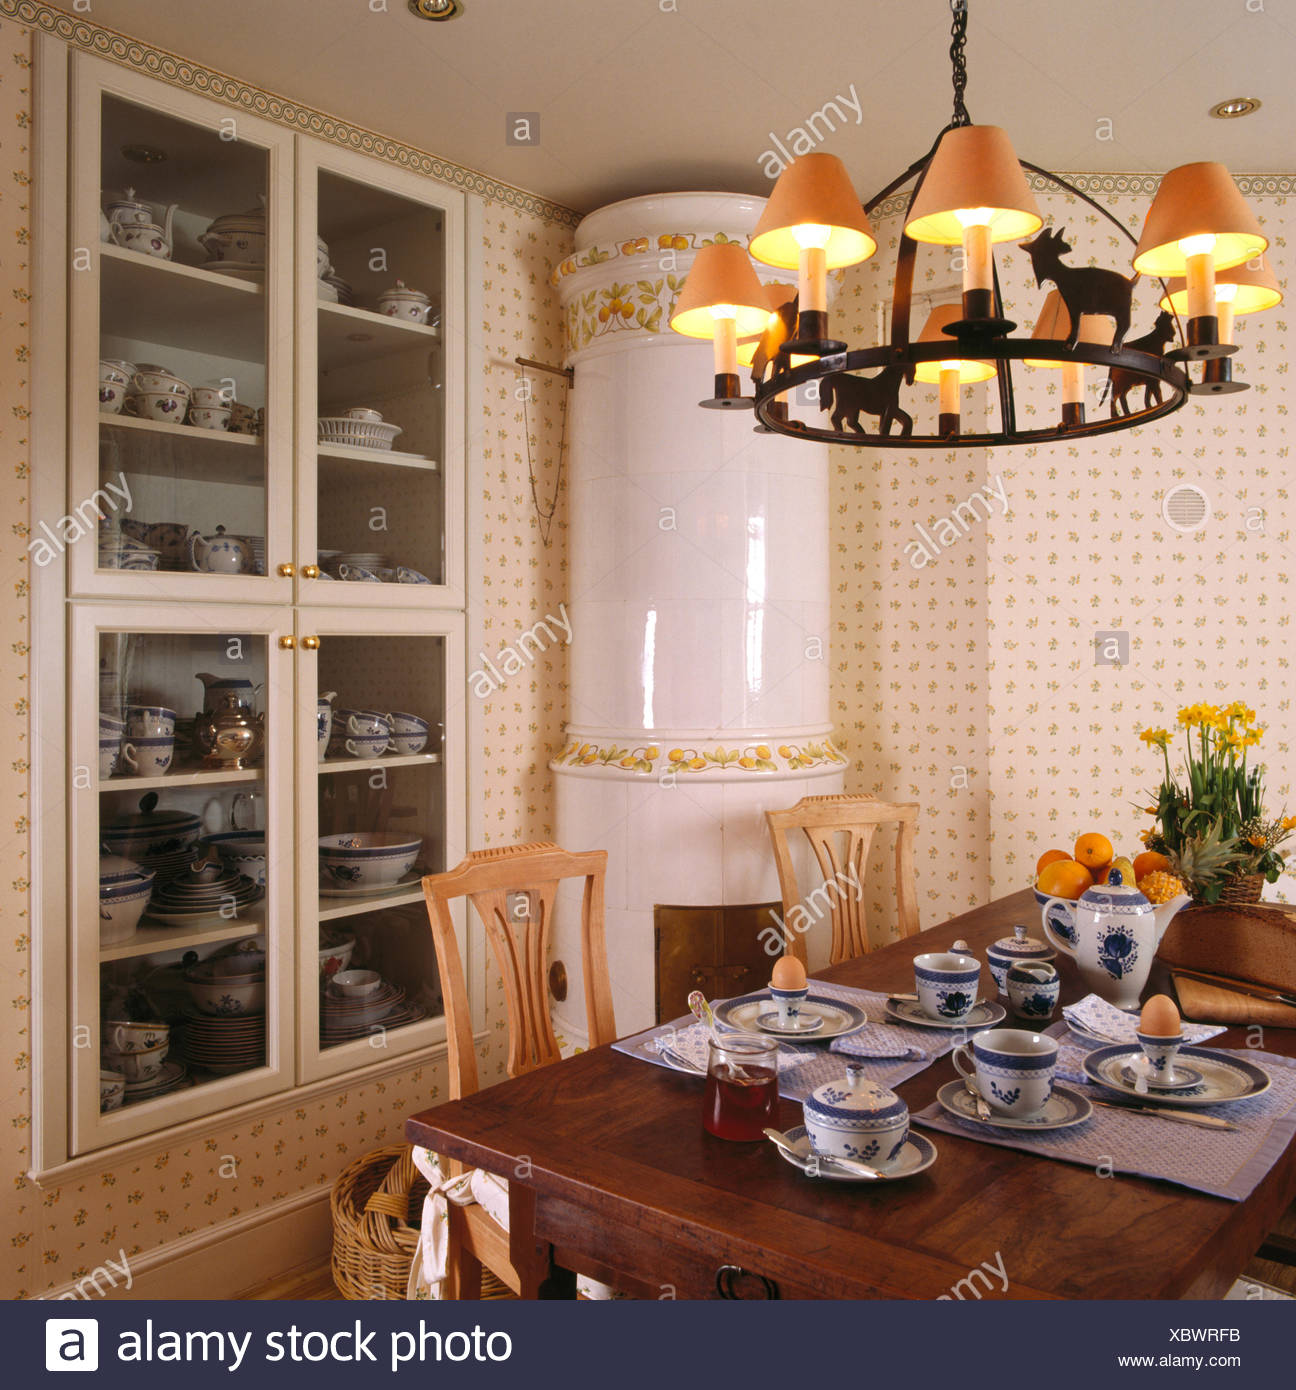 Shades on wrought iron ceiling light above table set for breakfast in dining room with large white ceramic stove - Stock Image